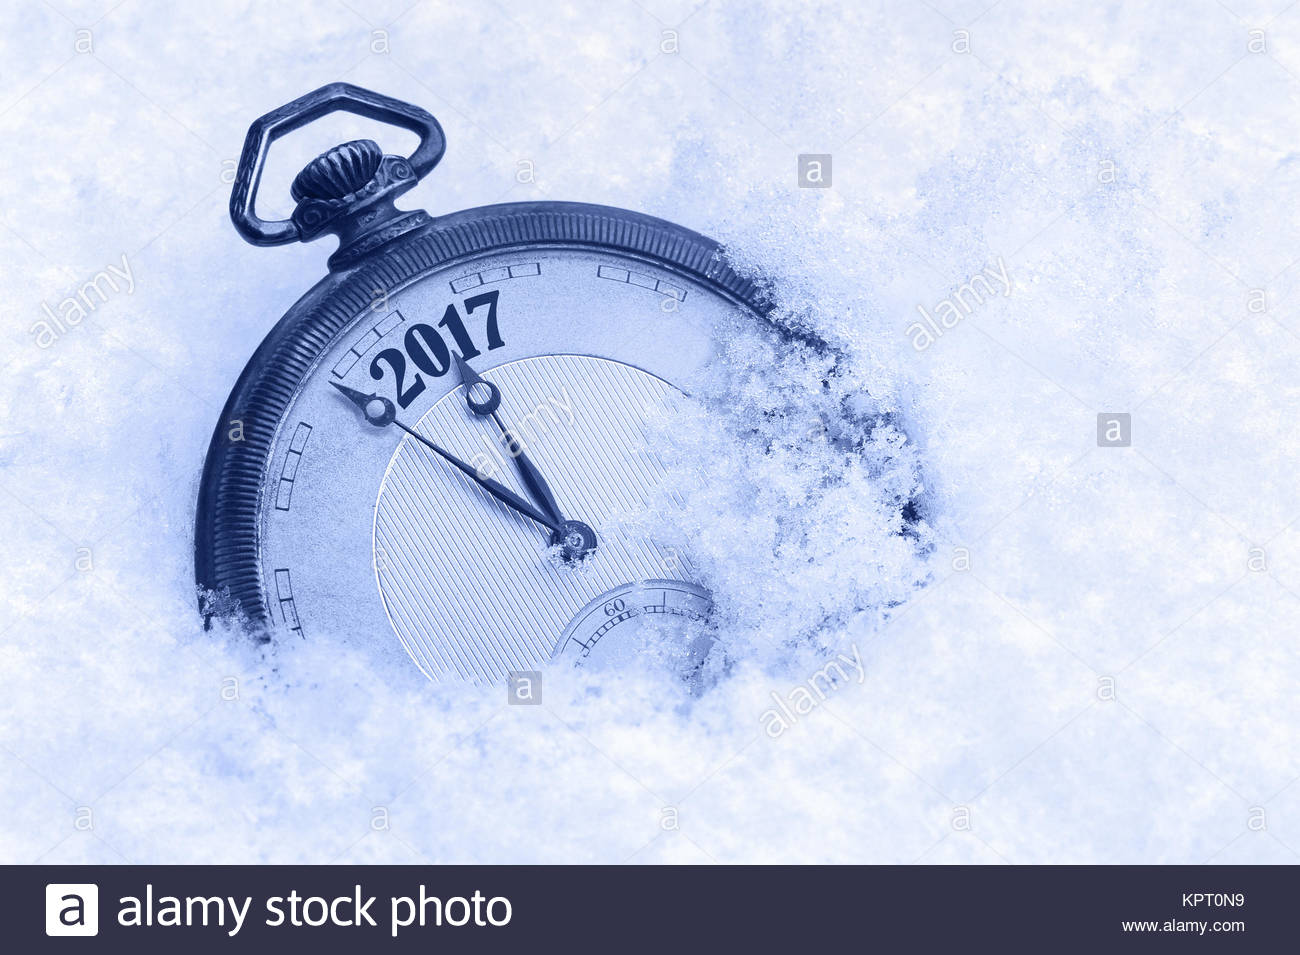 New Year 2017 greeting card, 2017 new year, pocket watch in snow, happy new year concept Stock Photo